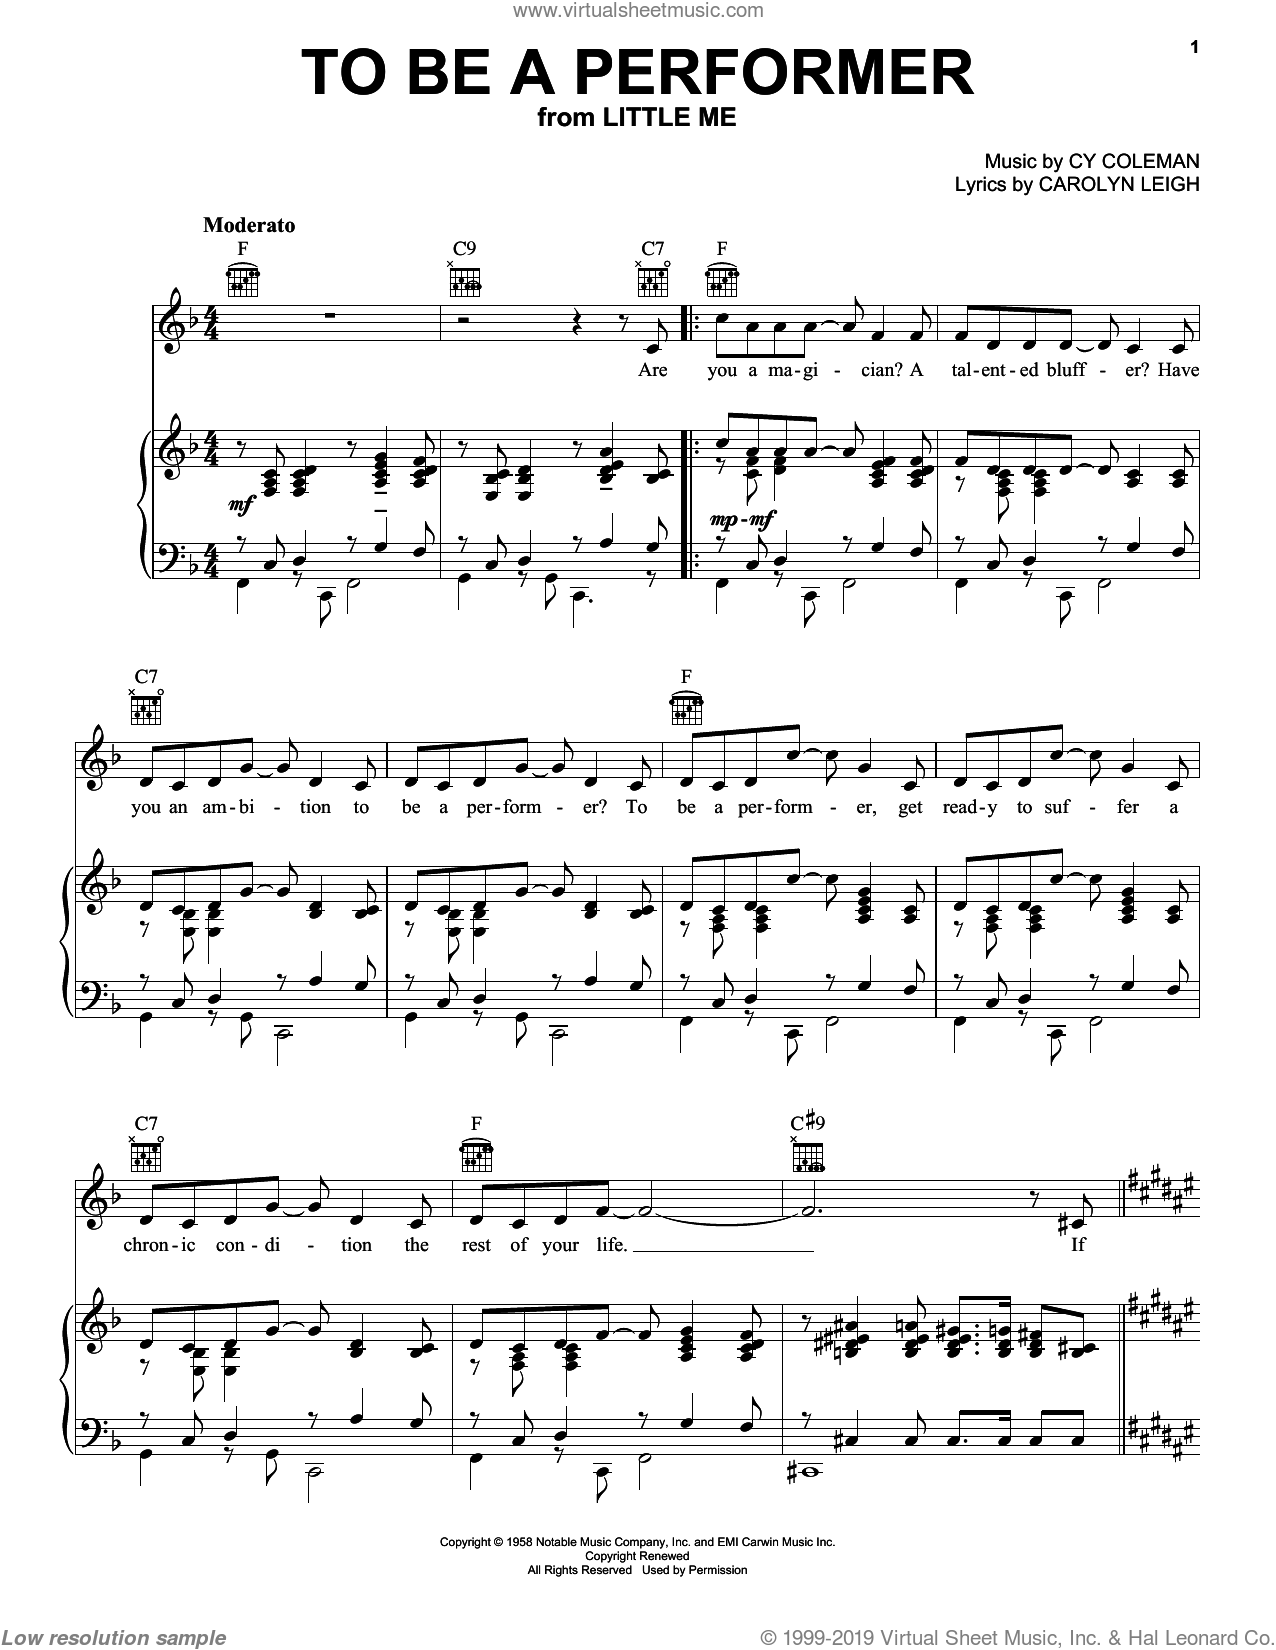 To Be A Performer sheet music for voice, piano or guitar by Carolyn Leigh